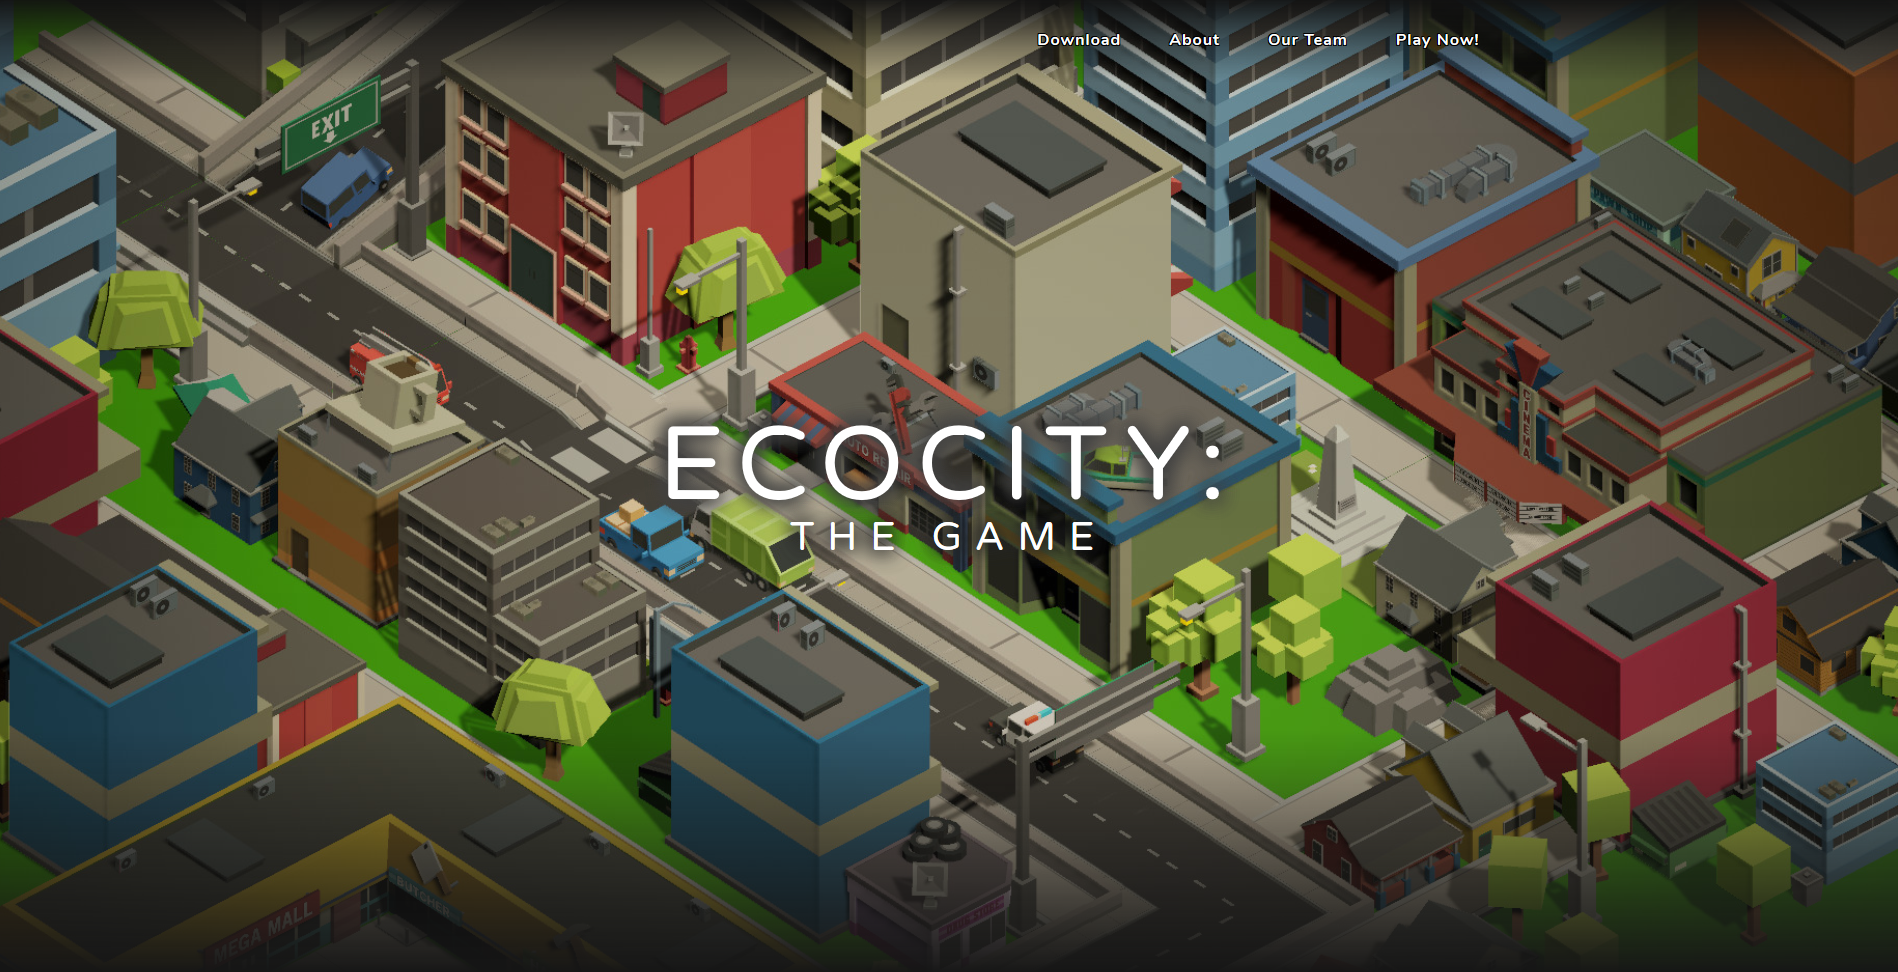 EcoCity: The Game's Public Website